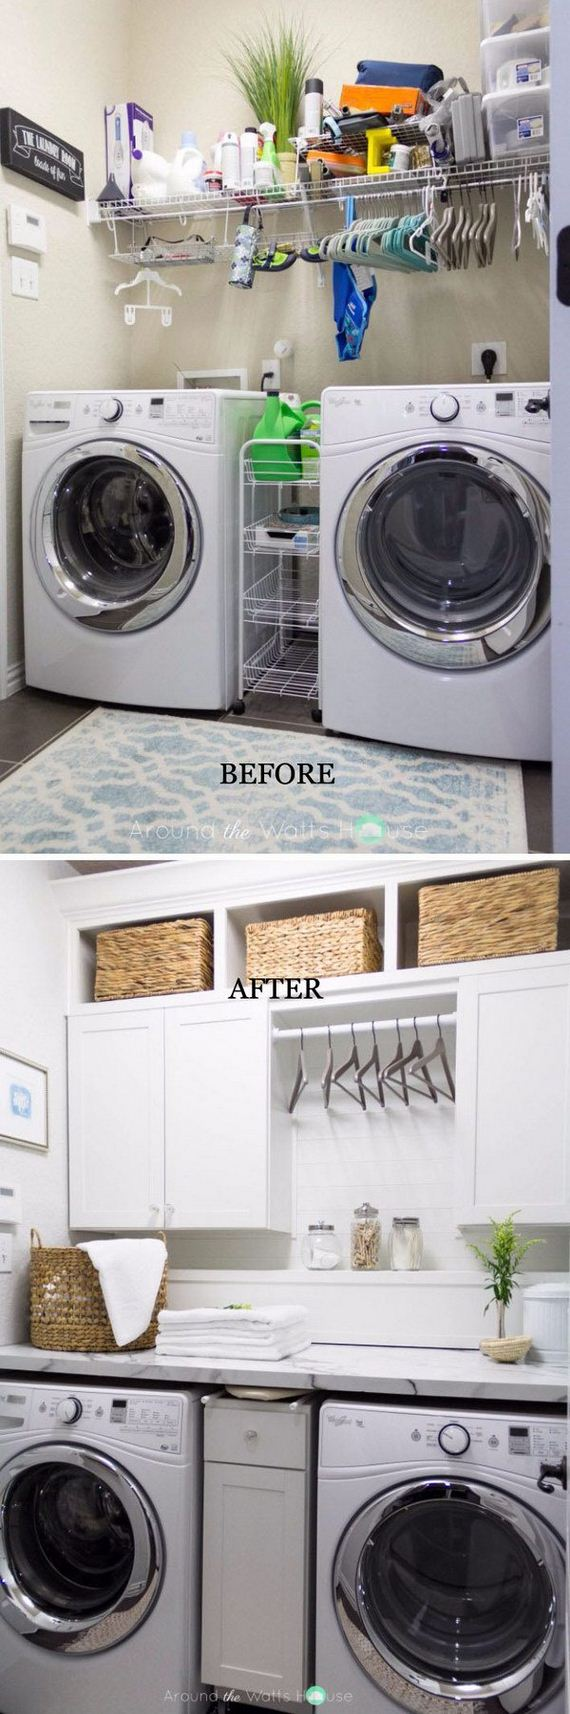 17-before-laundry-room